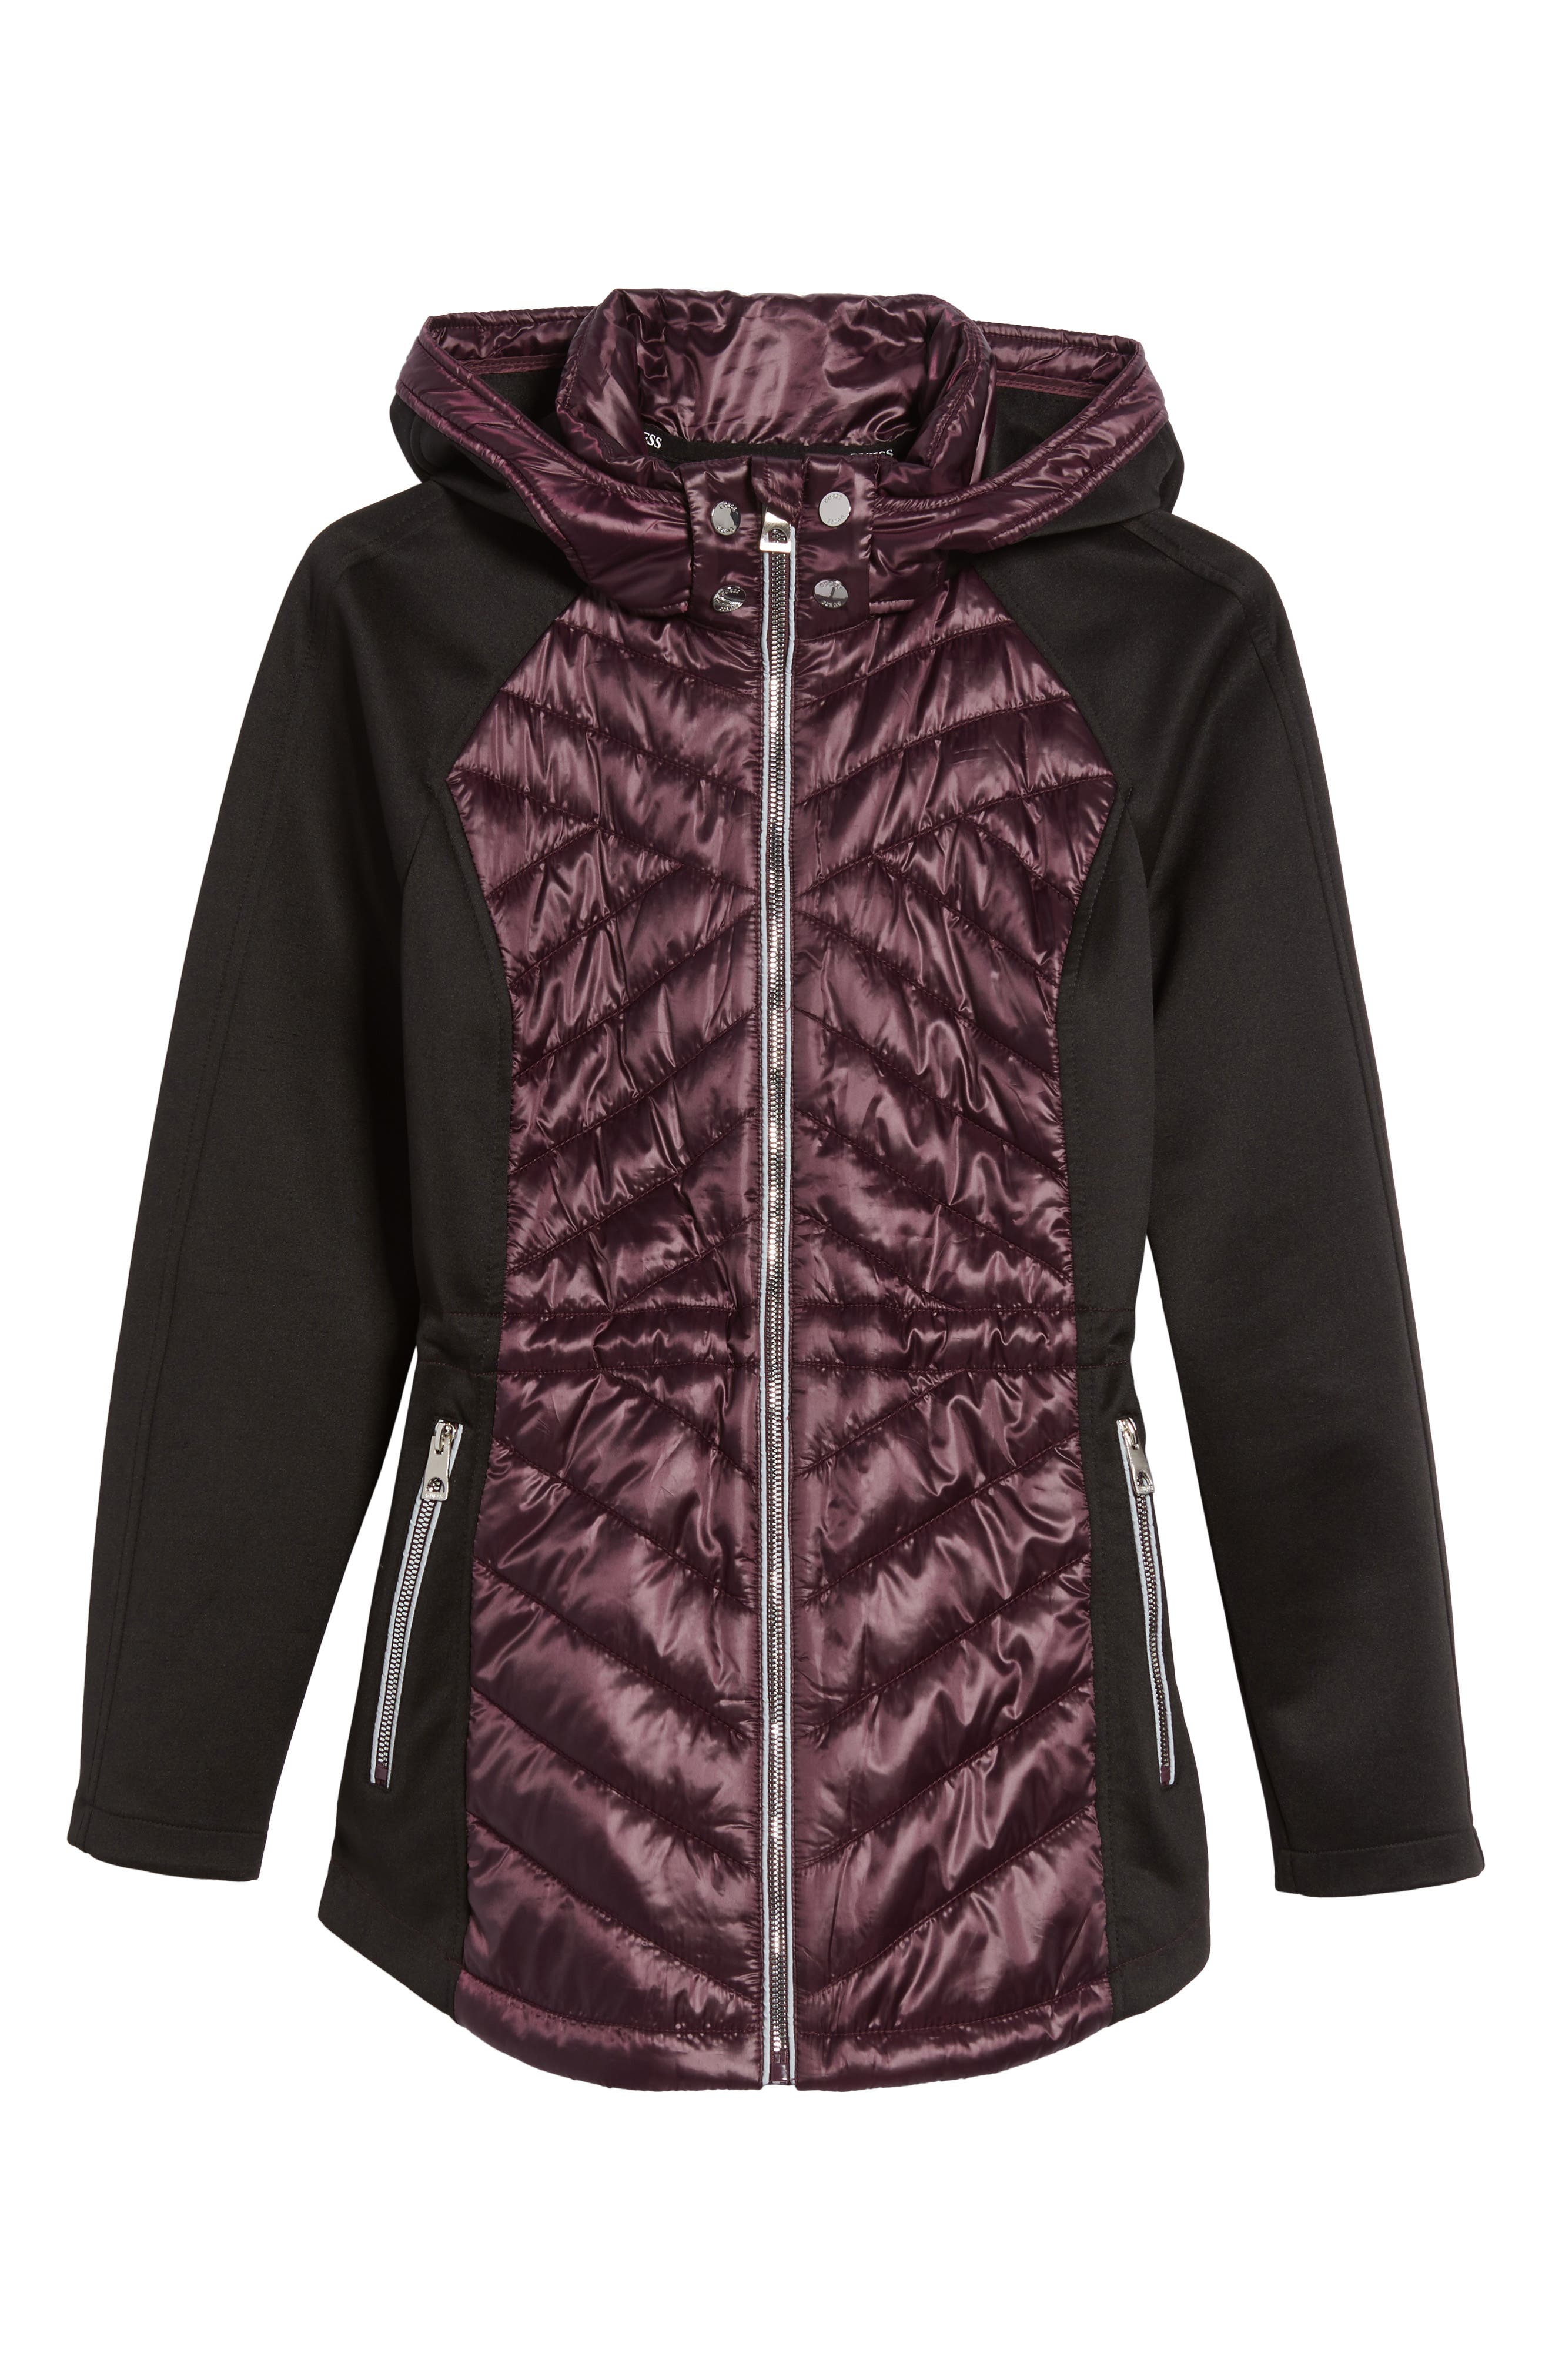 Insulated Anorak Jacket,                             Alternate thumbnail 6, color,                             Wine